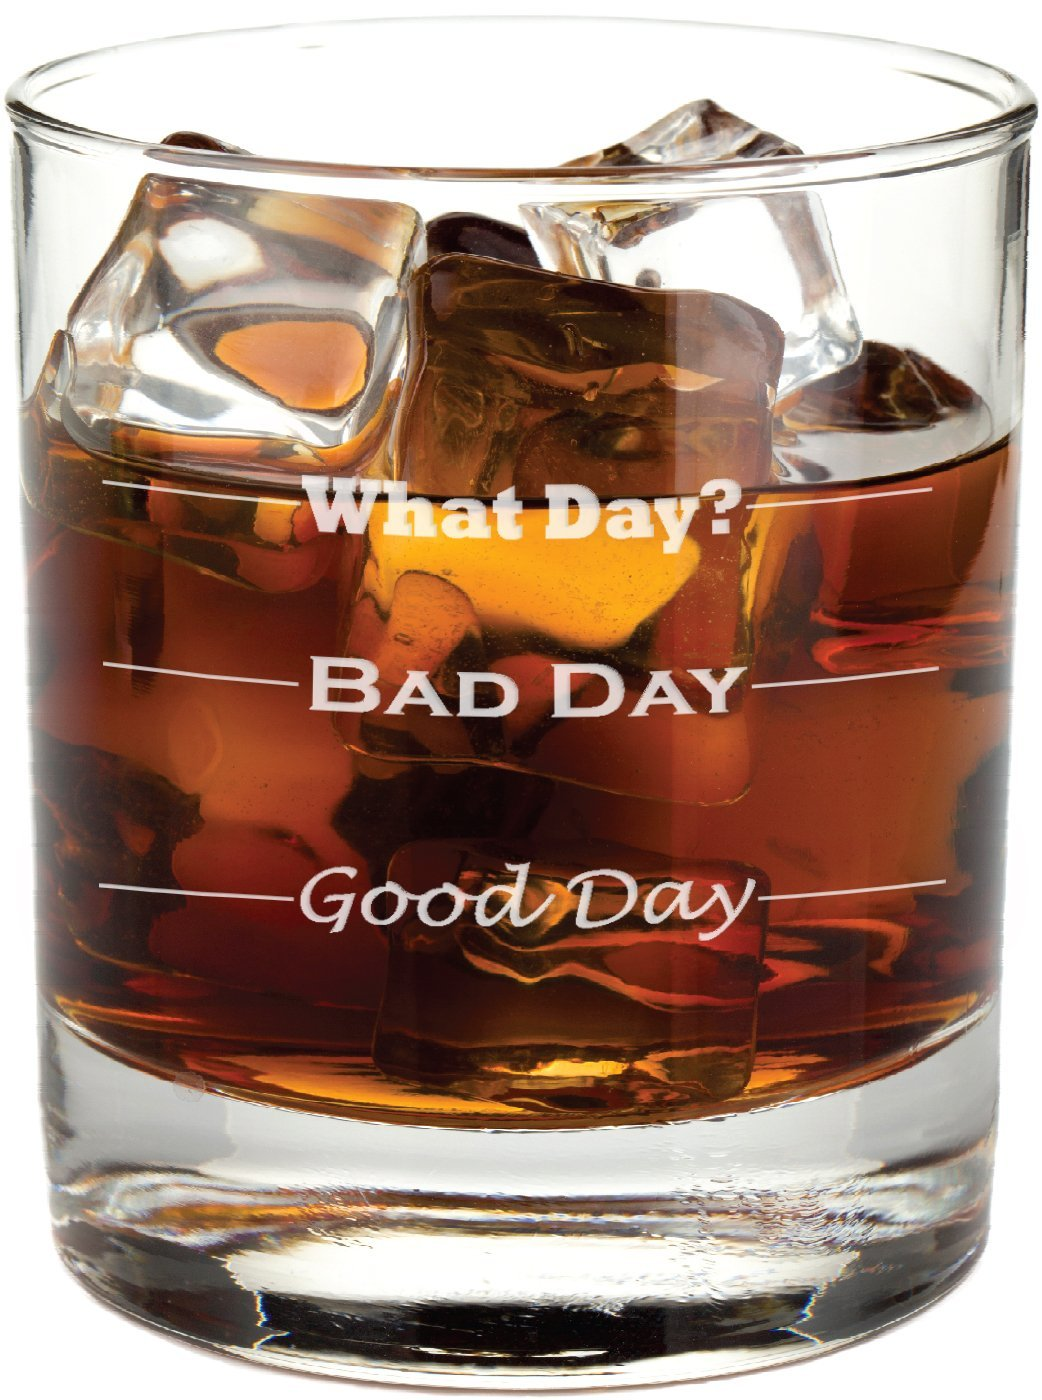 Good Day, Bad Day - Funny 11 oz Rocks Glass, Permanently Etched, Gift for Dad, Co-Worker, Friend, Boss, Christmas